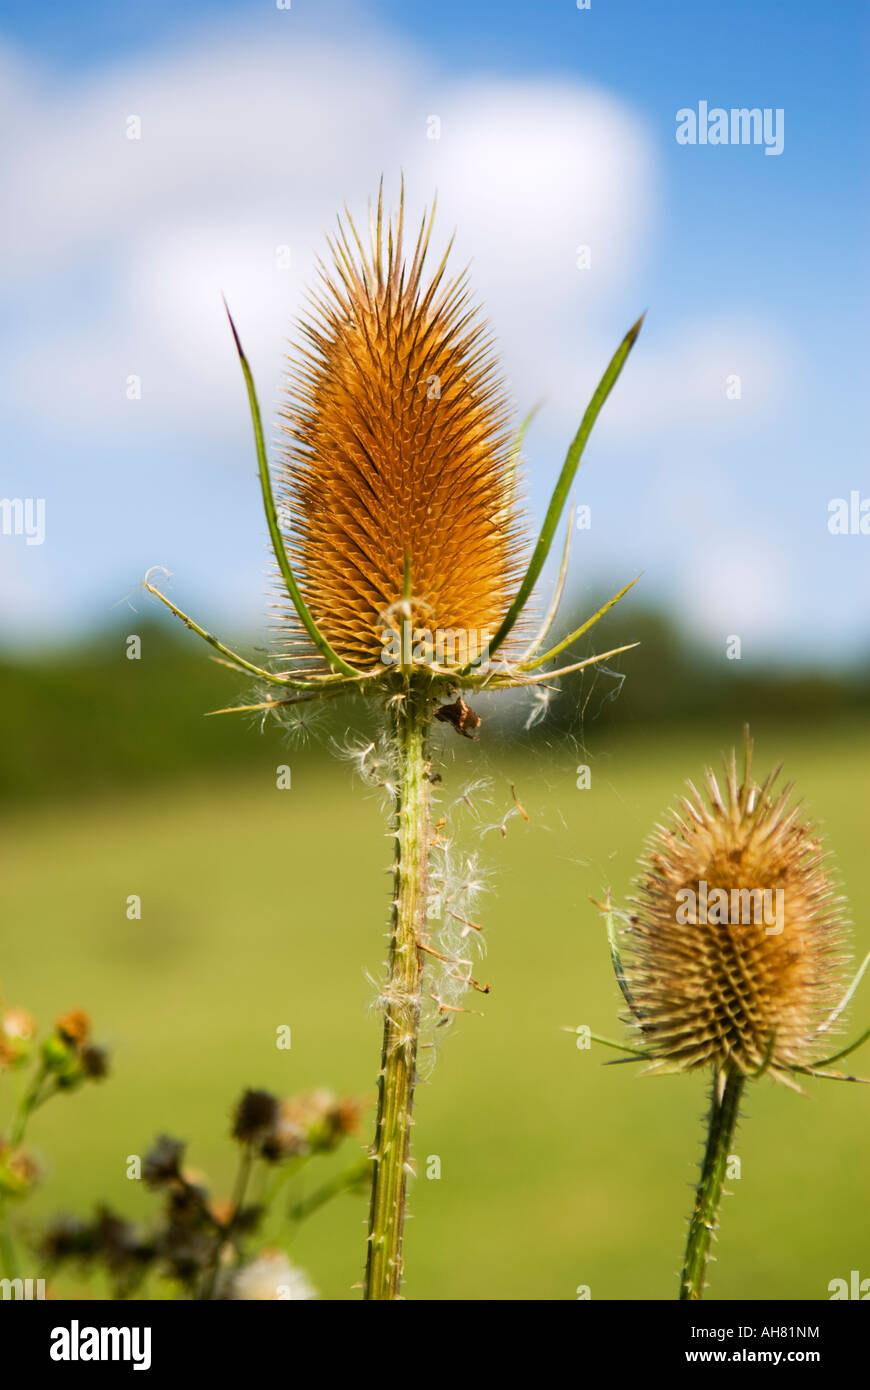 Teasel Plant Dispsacus Fullonum Photographed Against An Artistically Blurred Blue Sky And Clouds - Stock Image